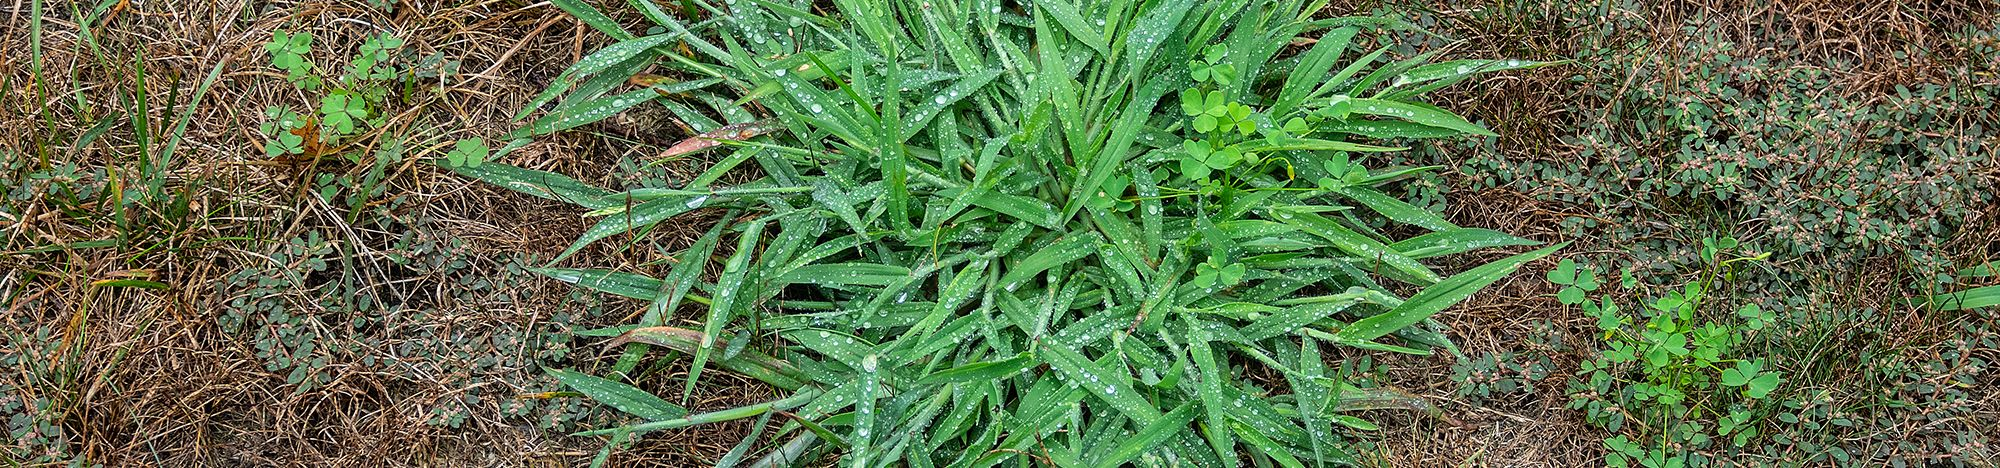 Crab grass in a lawn.